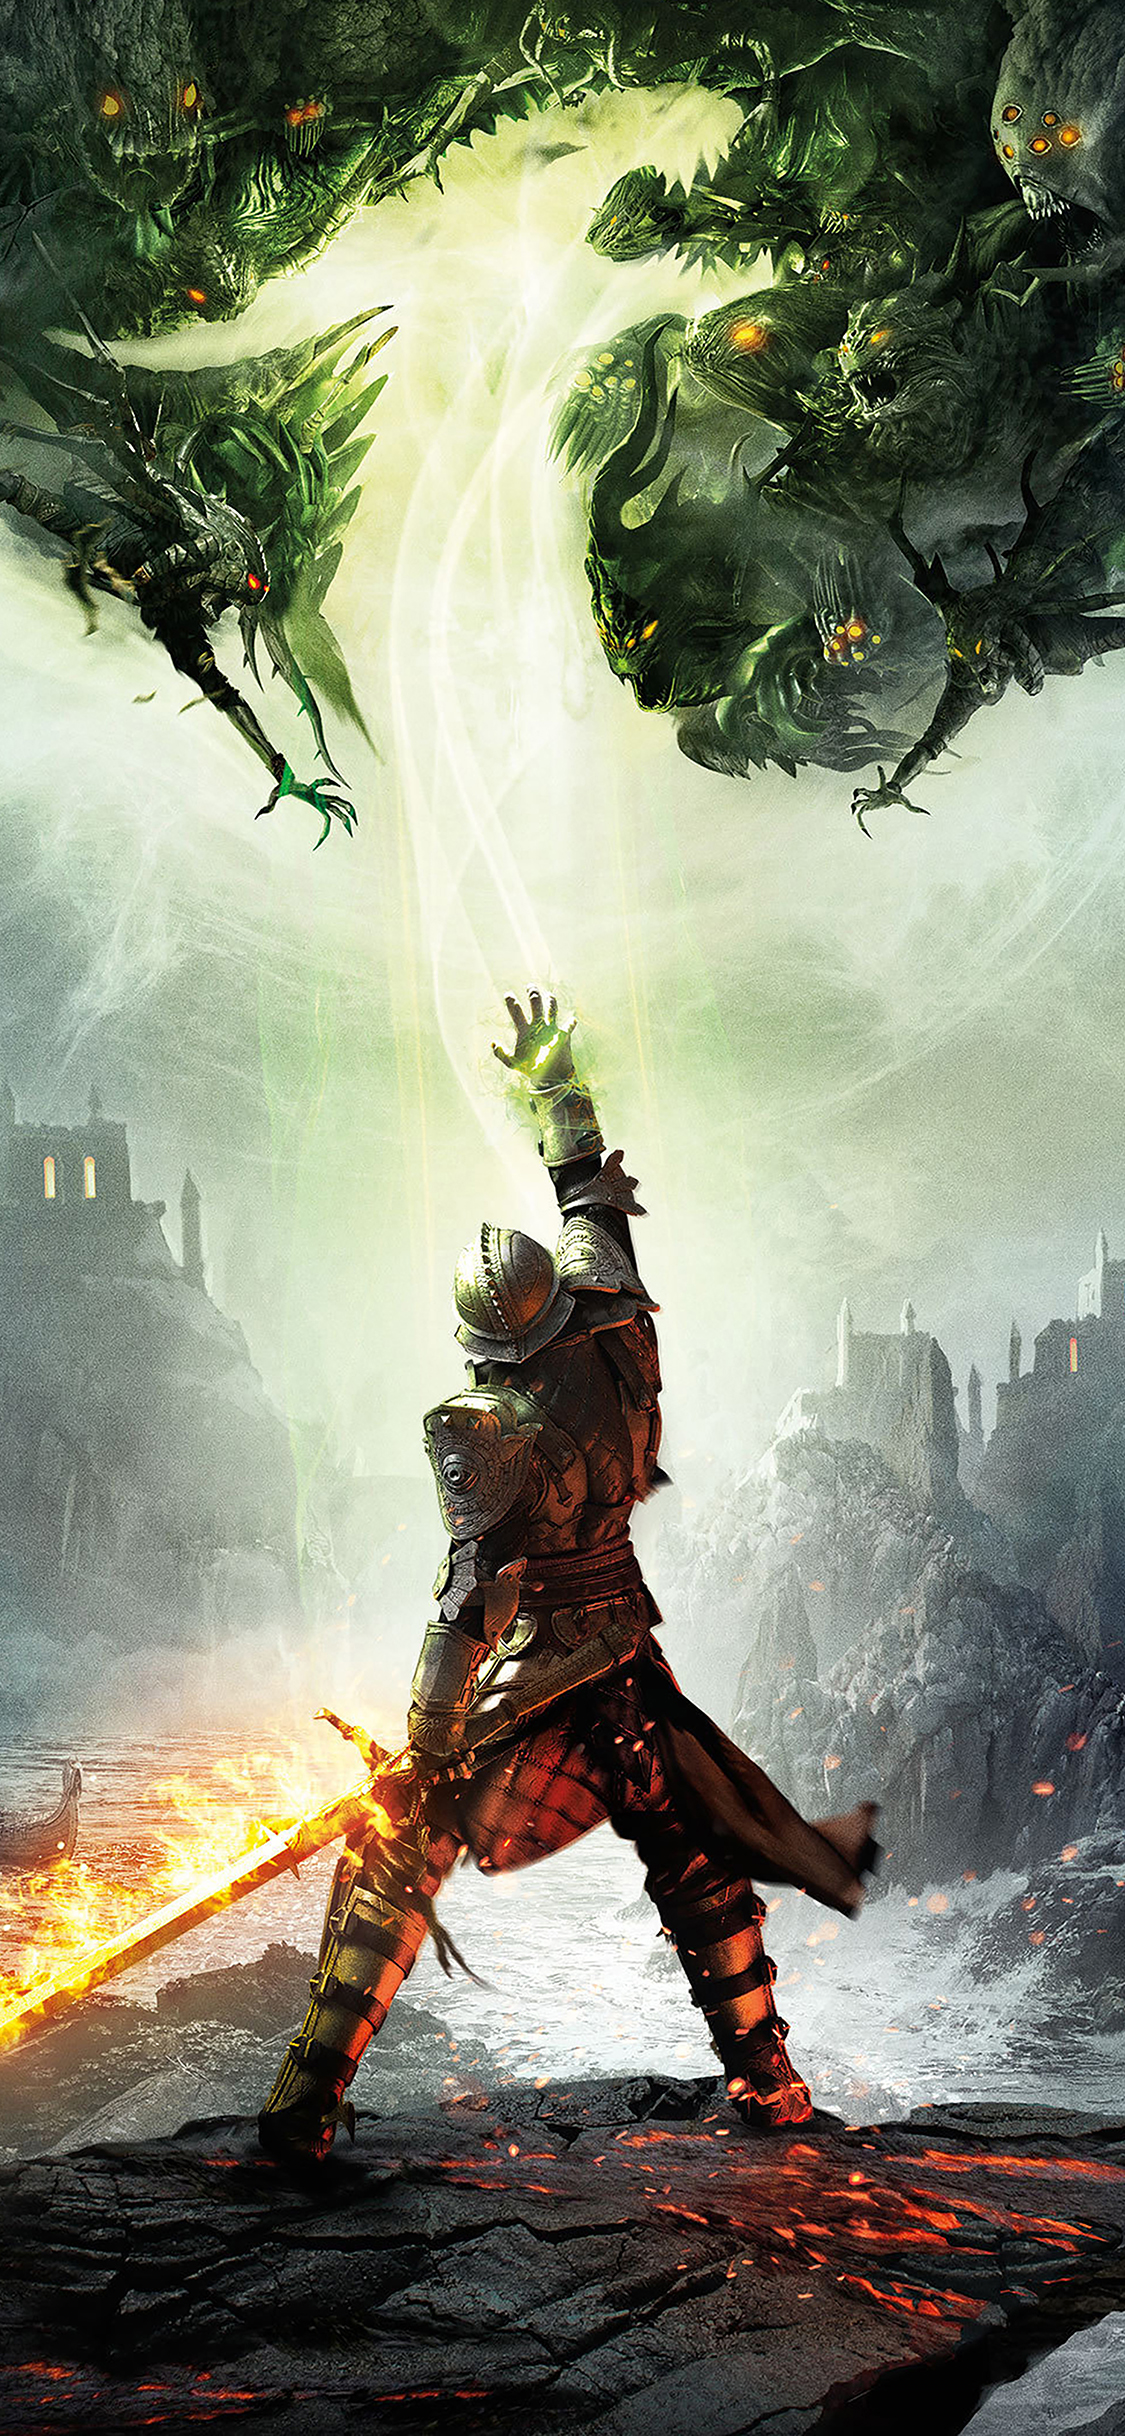 Ah66 Dragon Age Inquisition Game Illust Art Electronic Papers Co